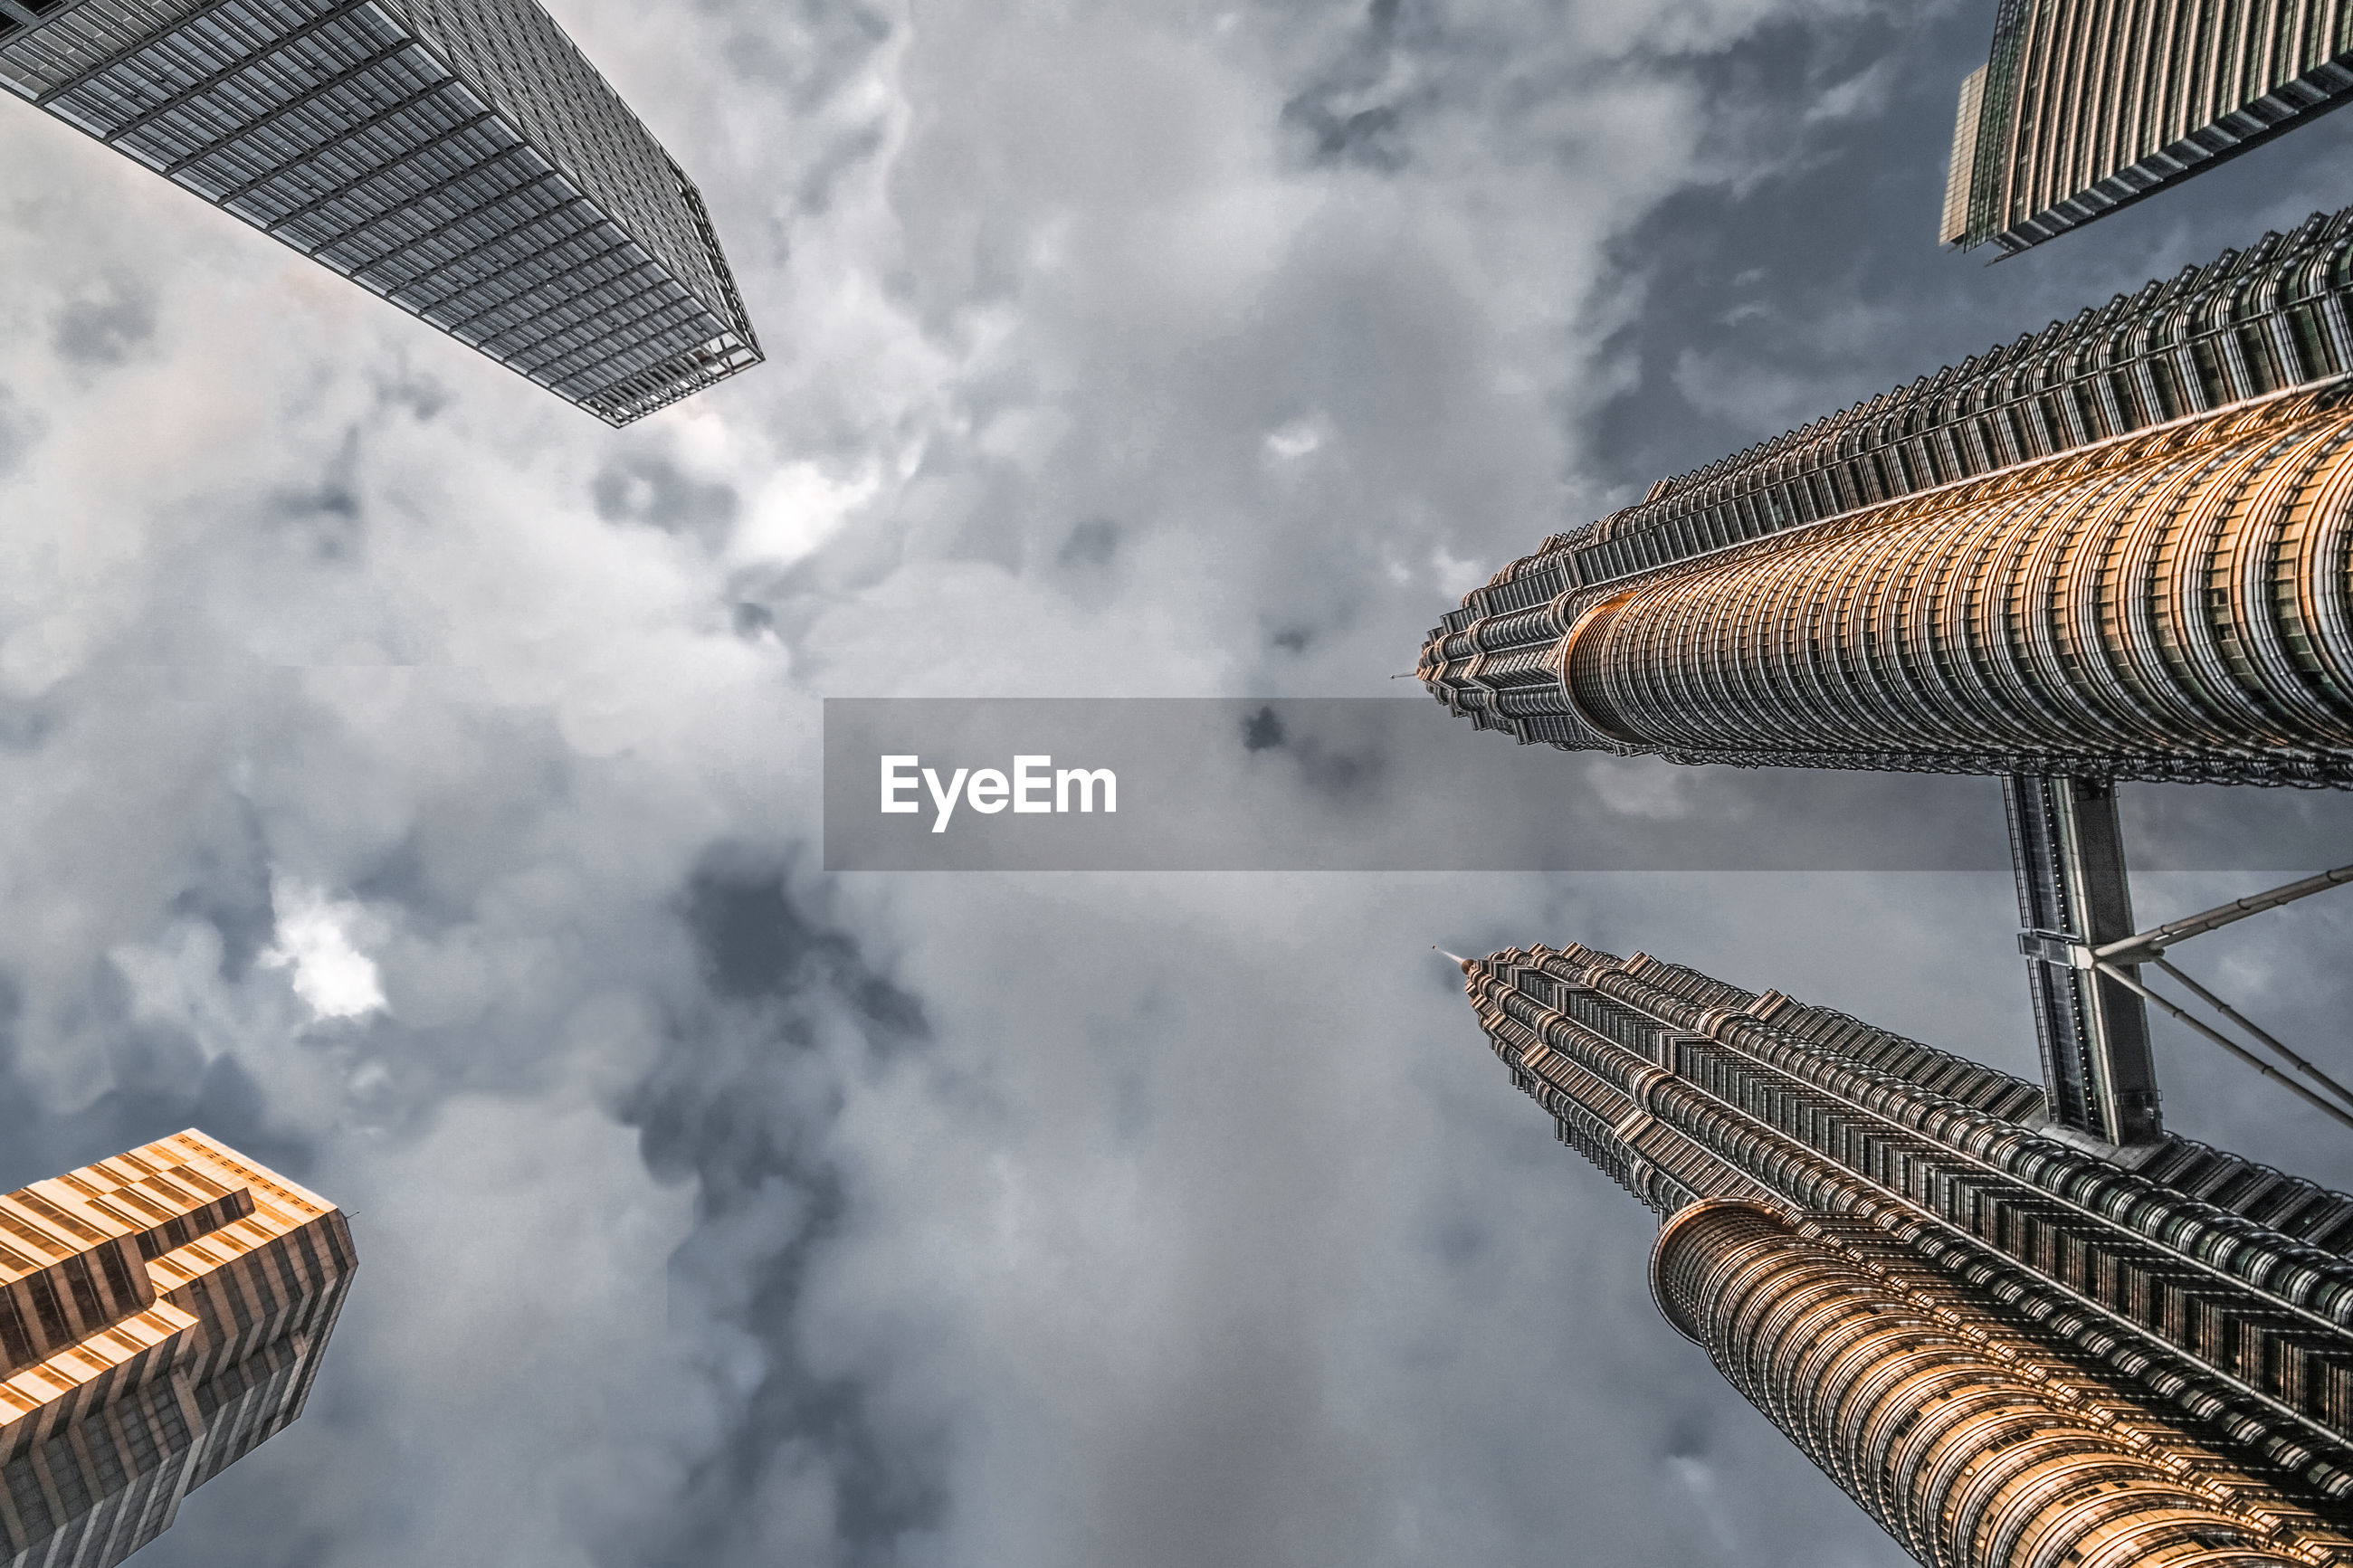 LOW ANGLE VIEW OF BUILDINGS IN CITY AGAINST CLOUDY SKY